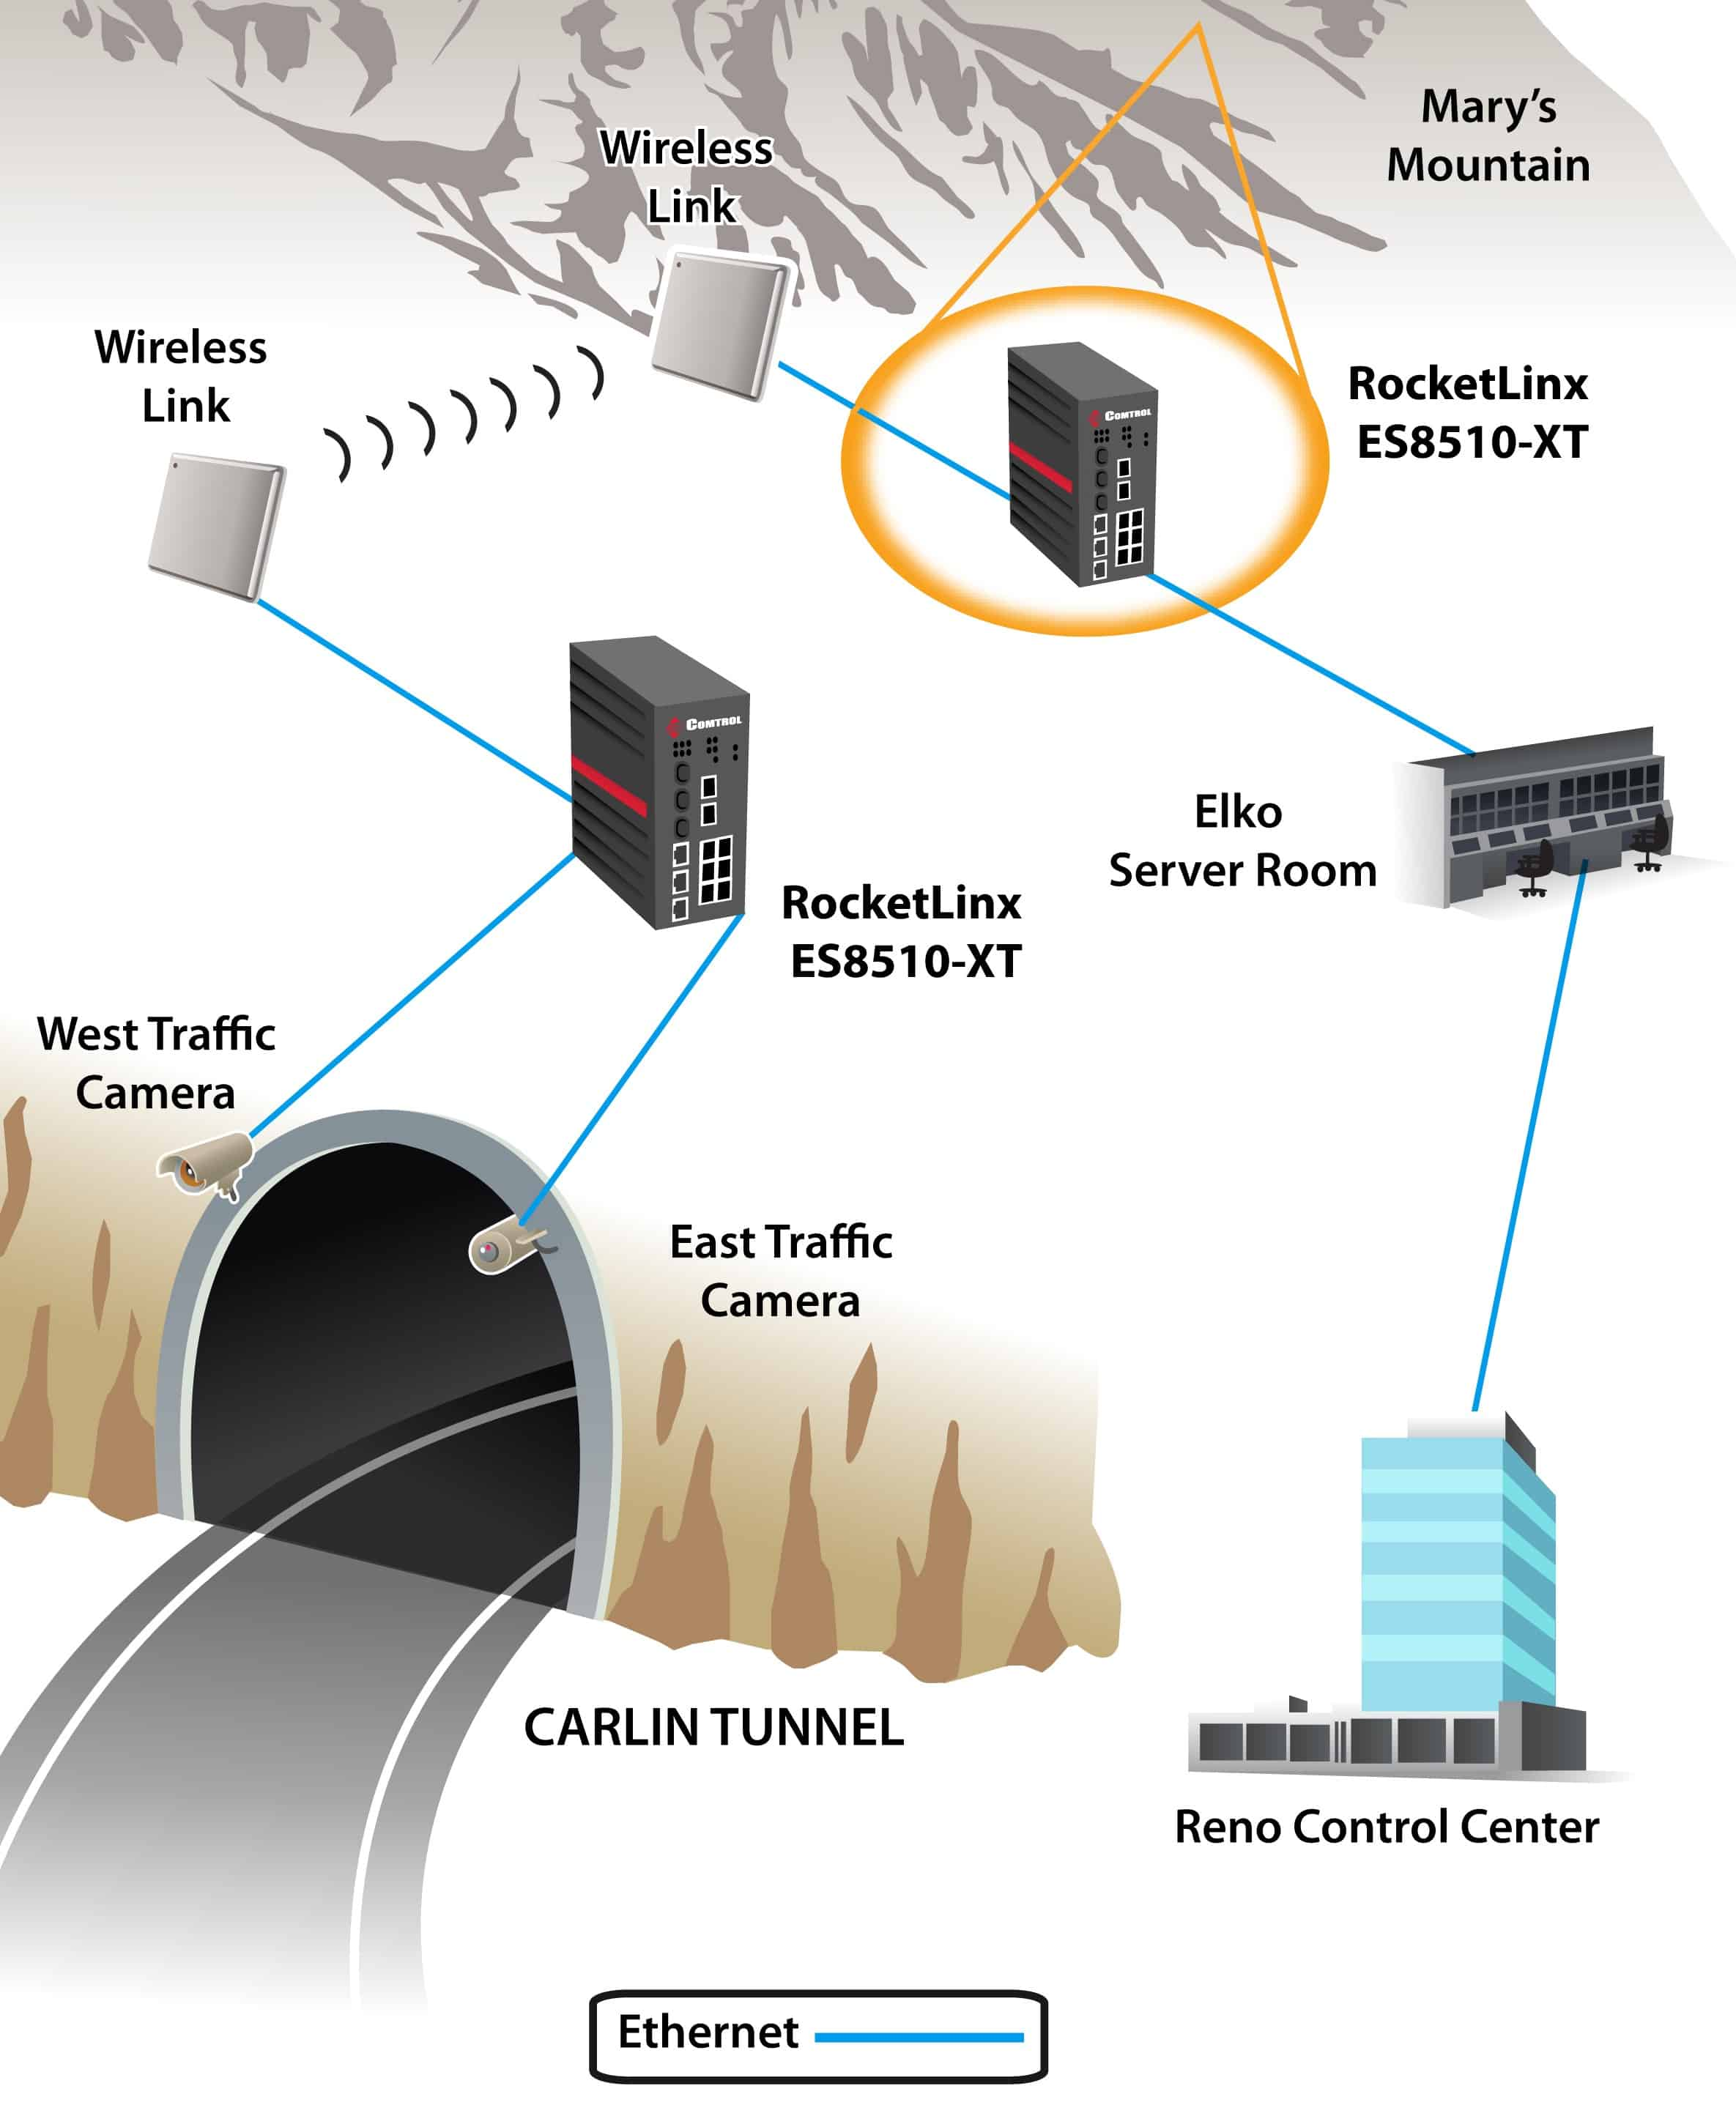 CarlinTunnel - Traffic Monitoring System Communication for Nevada D.O.T.